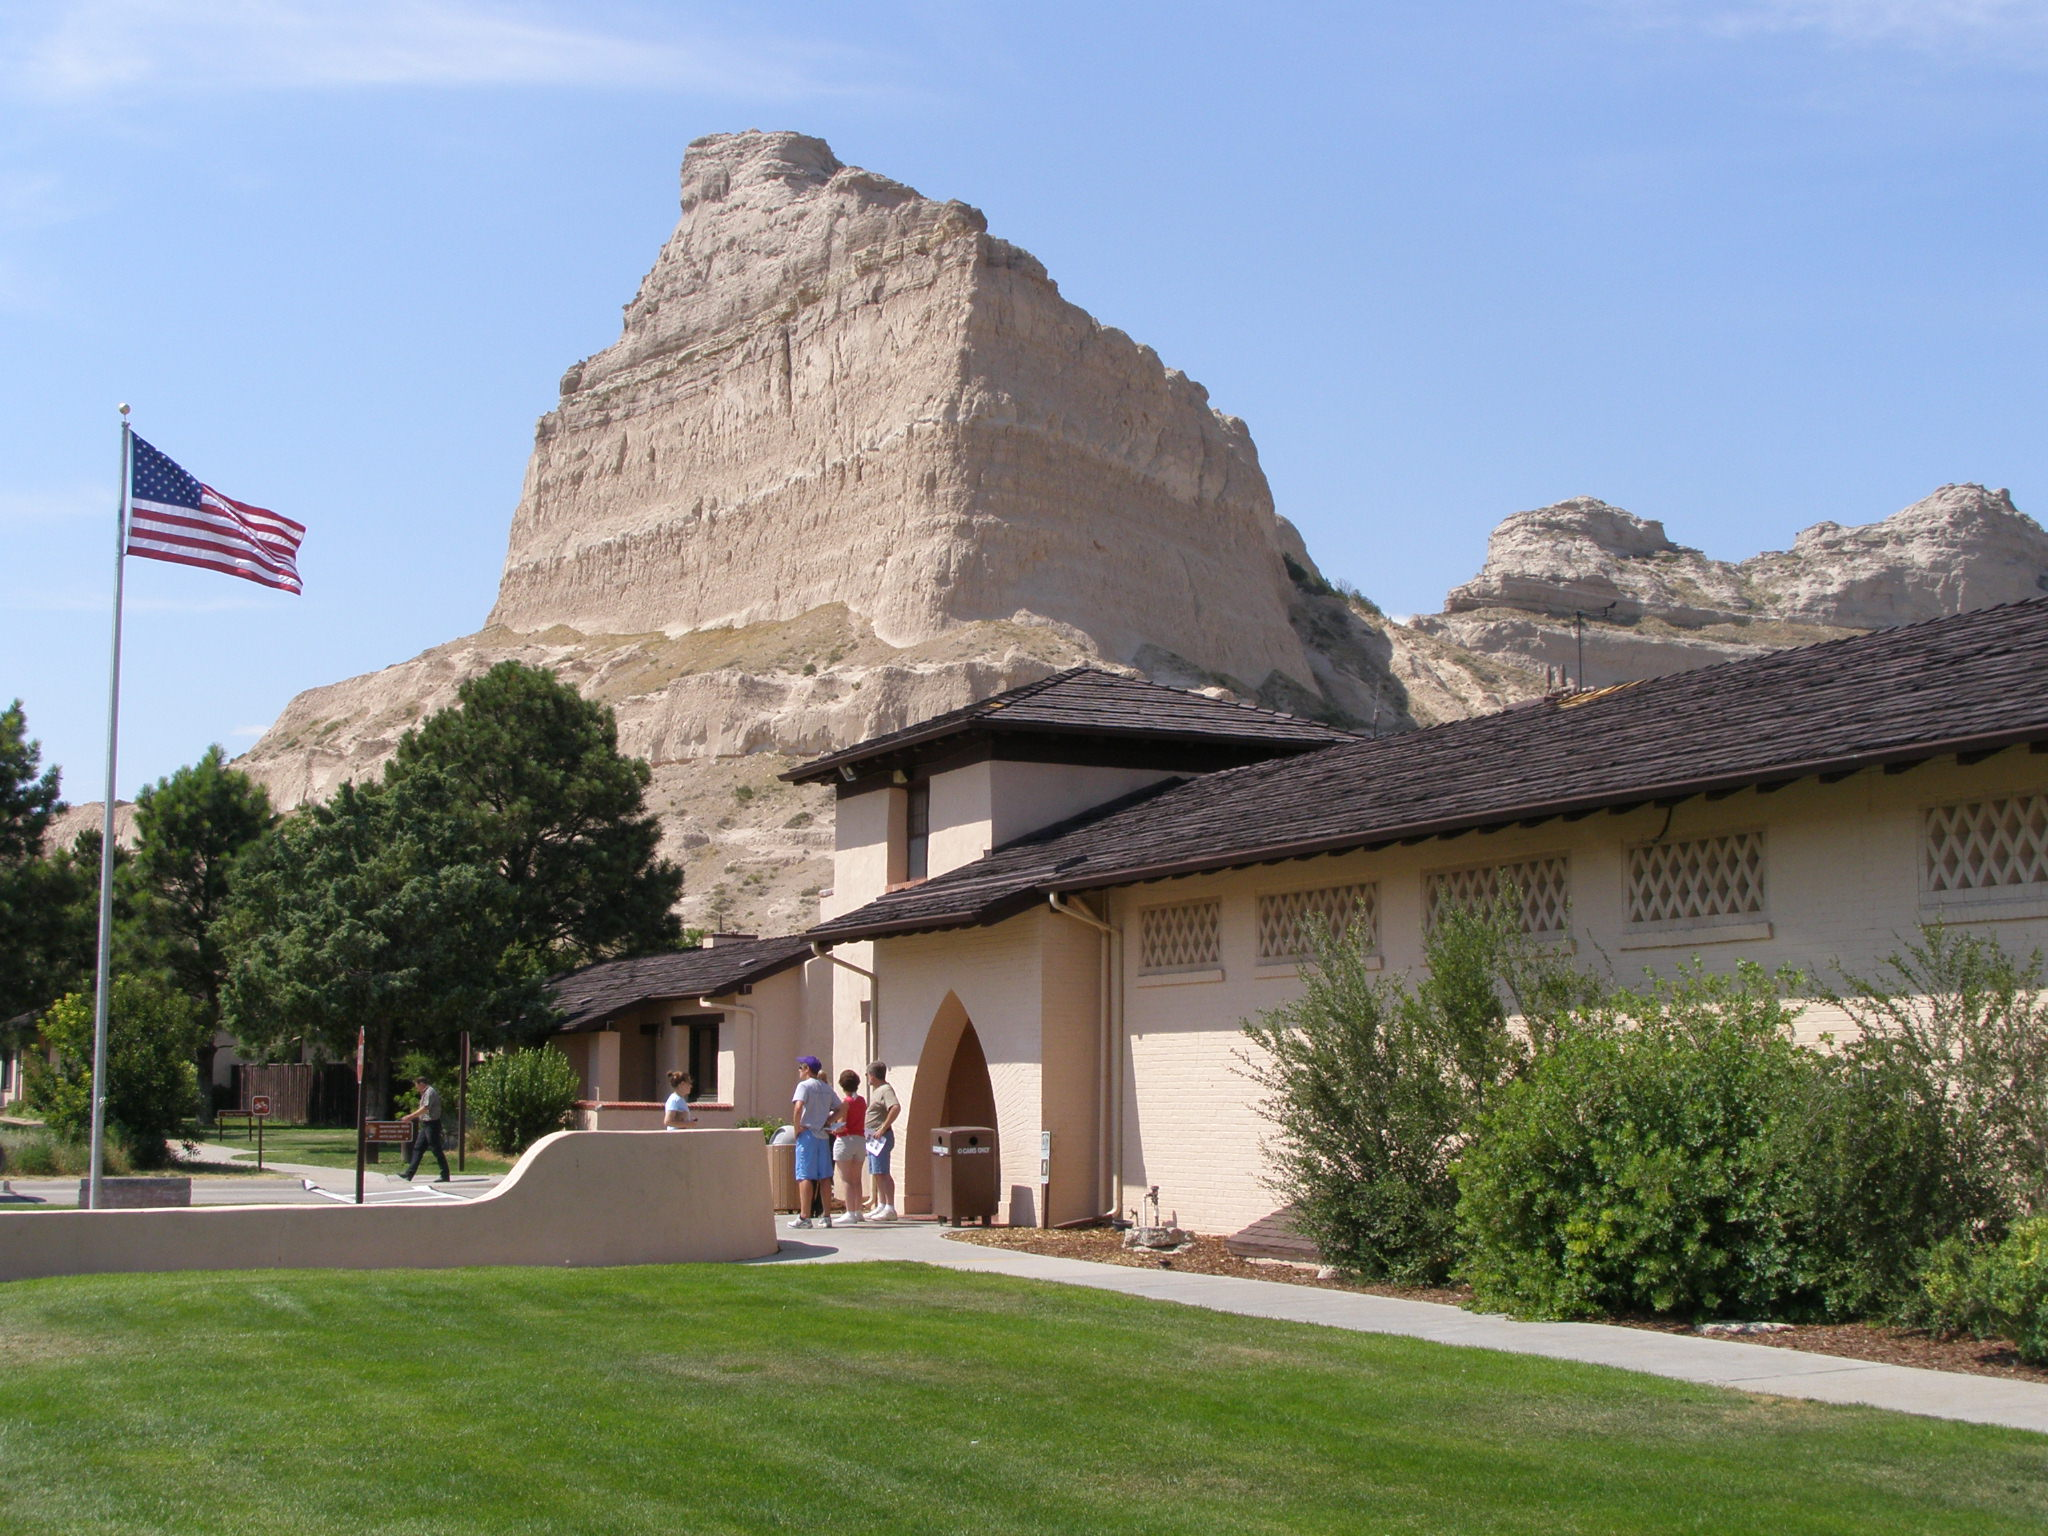 File:Scotts Bluff VC n entrance (Eagle Rock).JPG